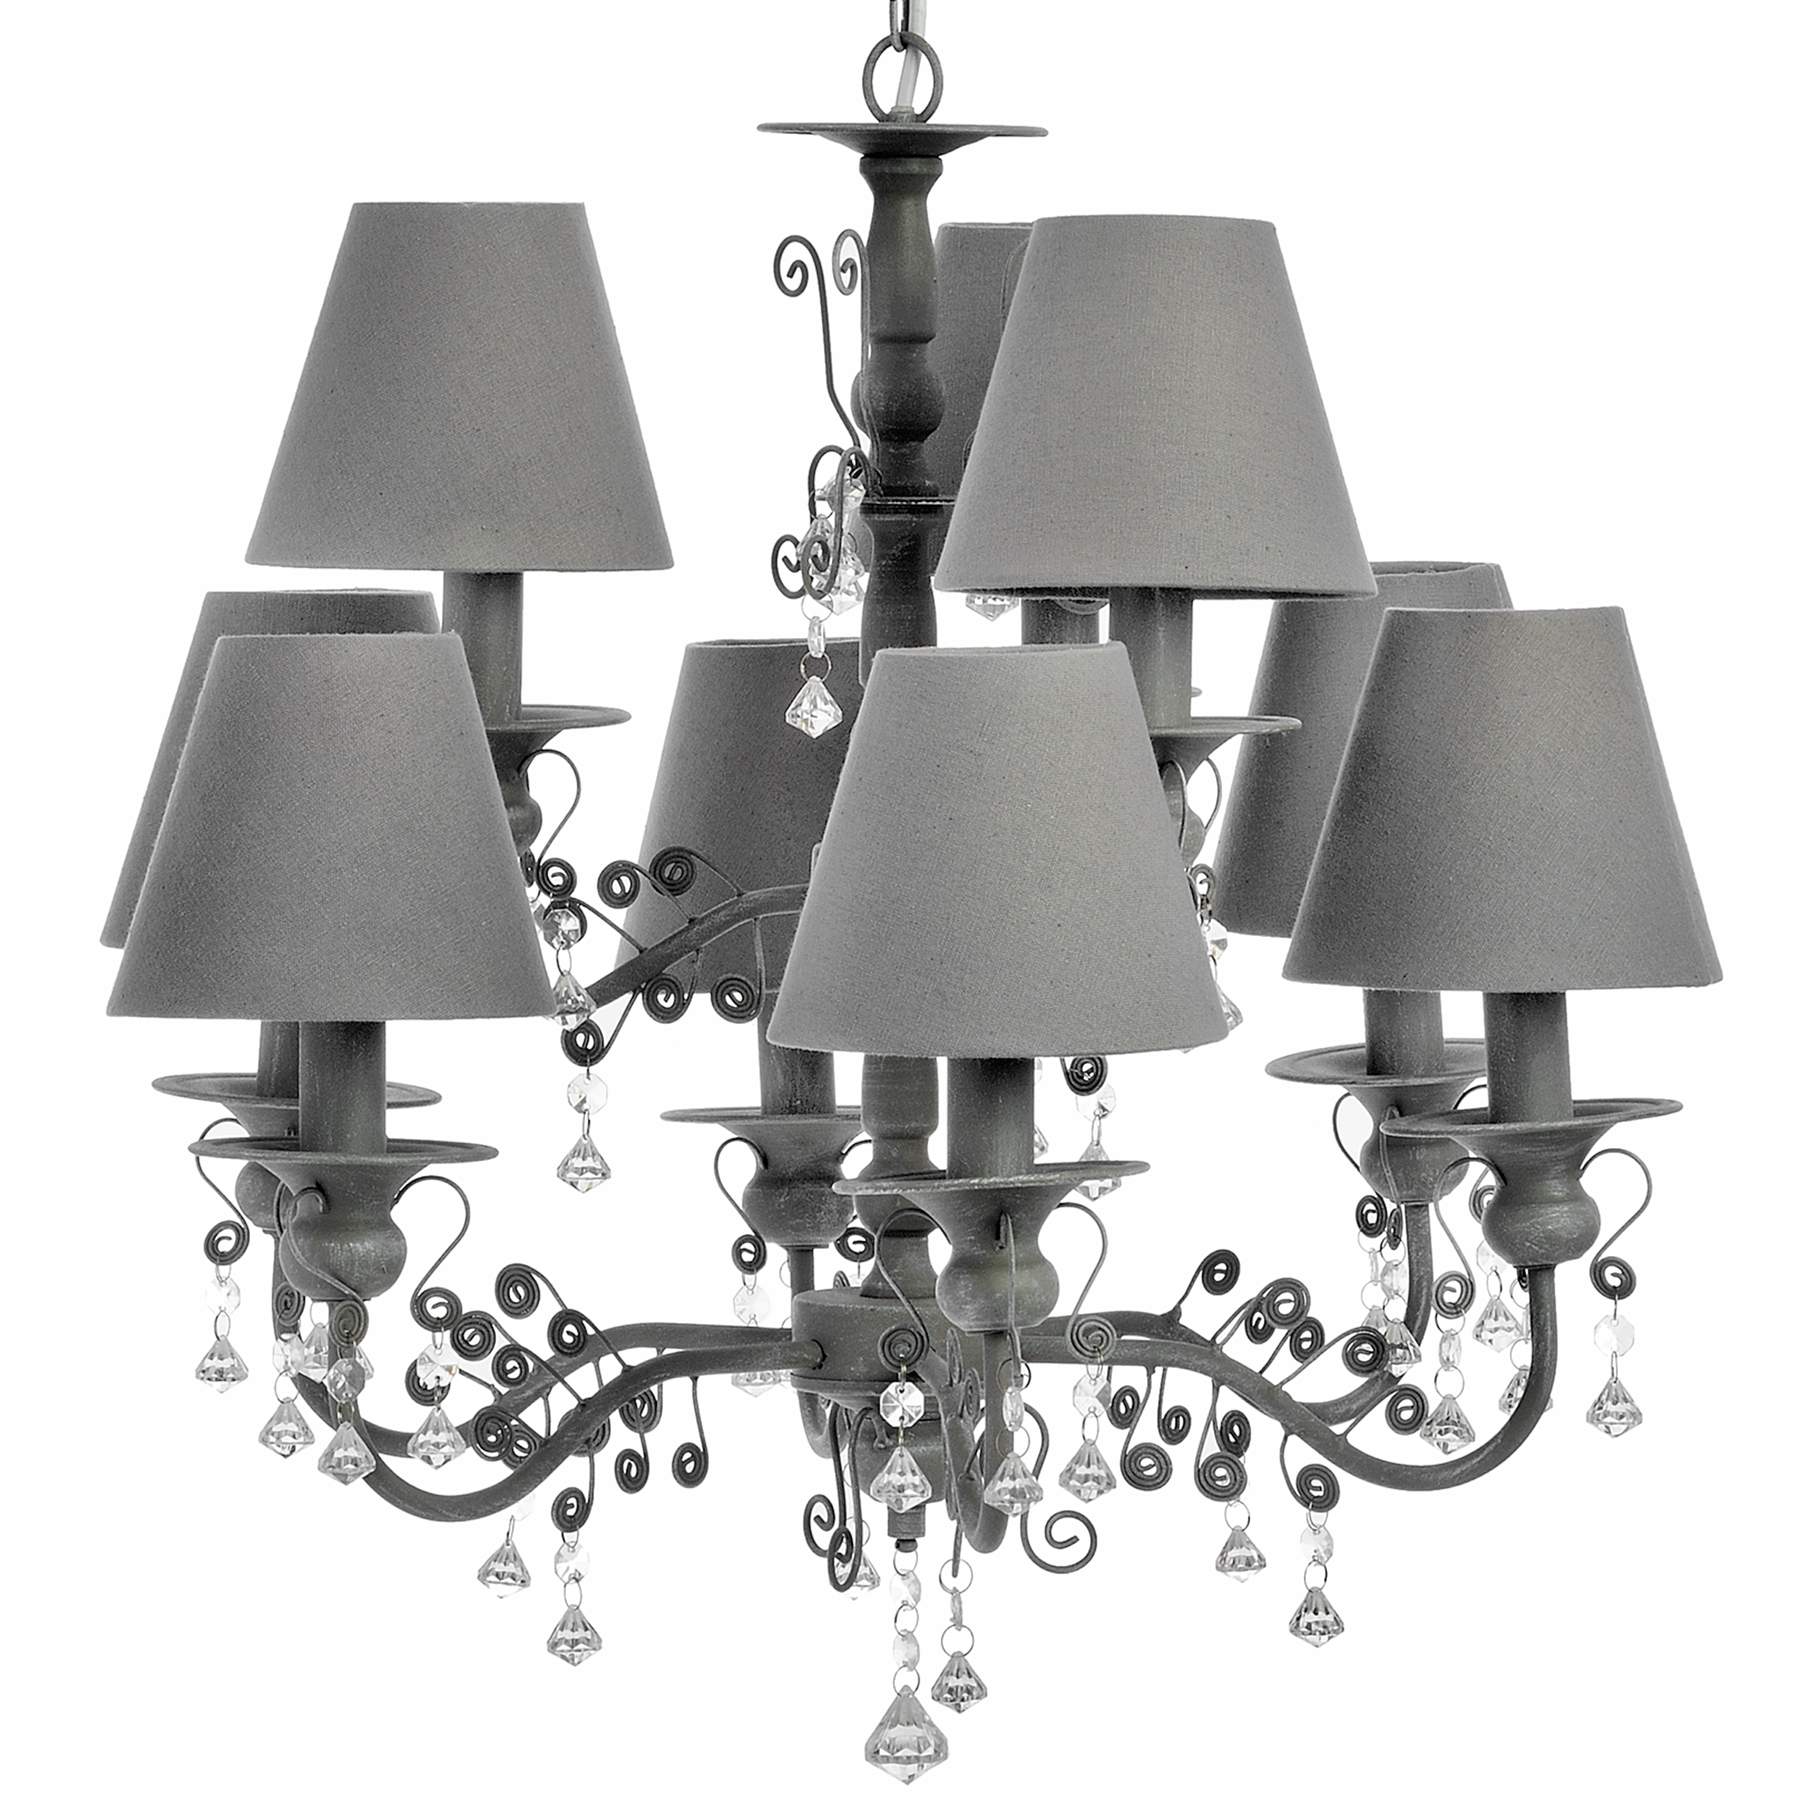 Chandelier Grey Chandelier Shades Light Gray Shadesgrey Lamp And With Regard To Grey Chandeliers (Image 17 of 25)